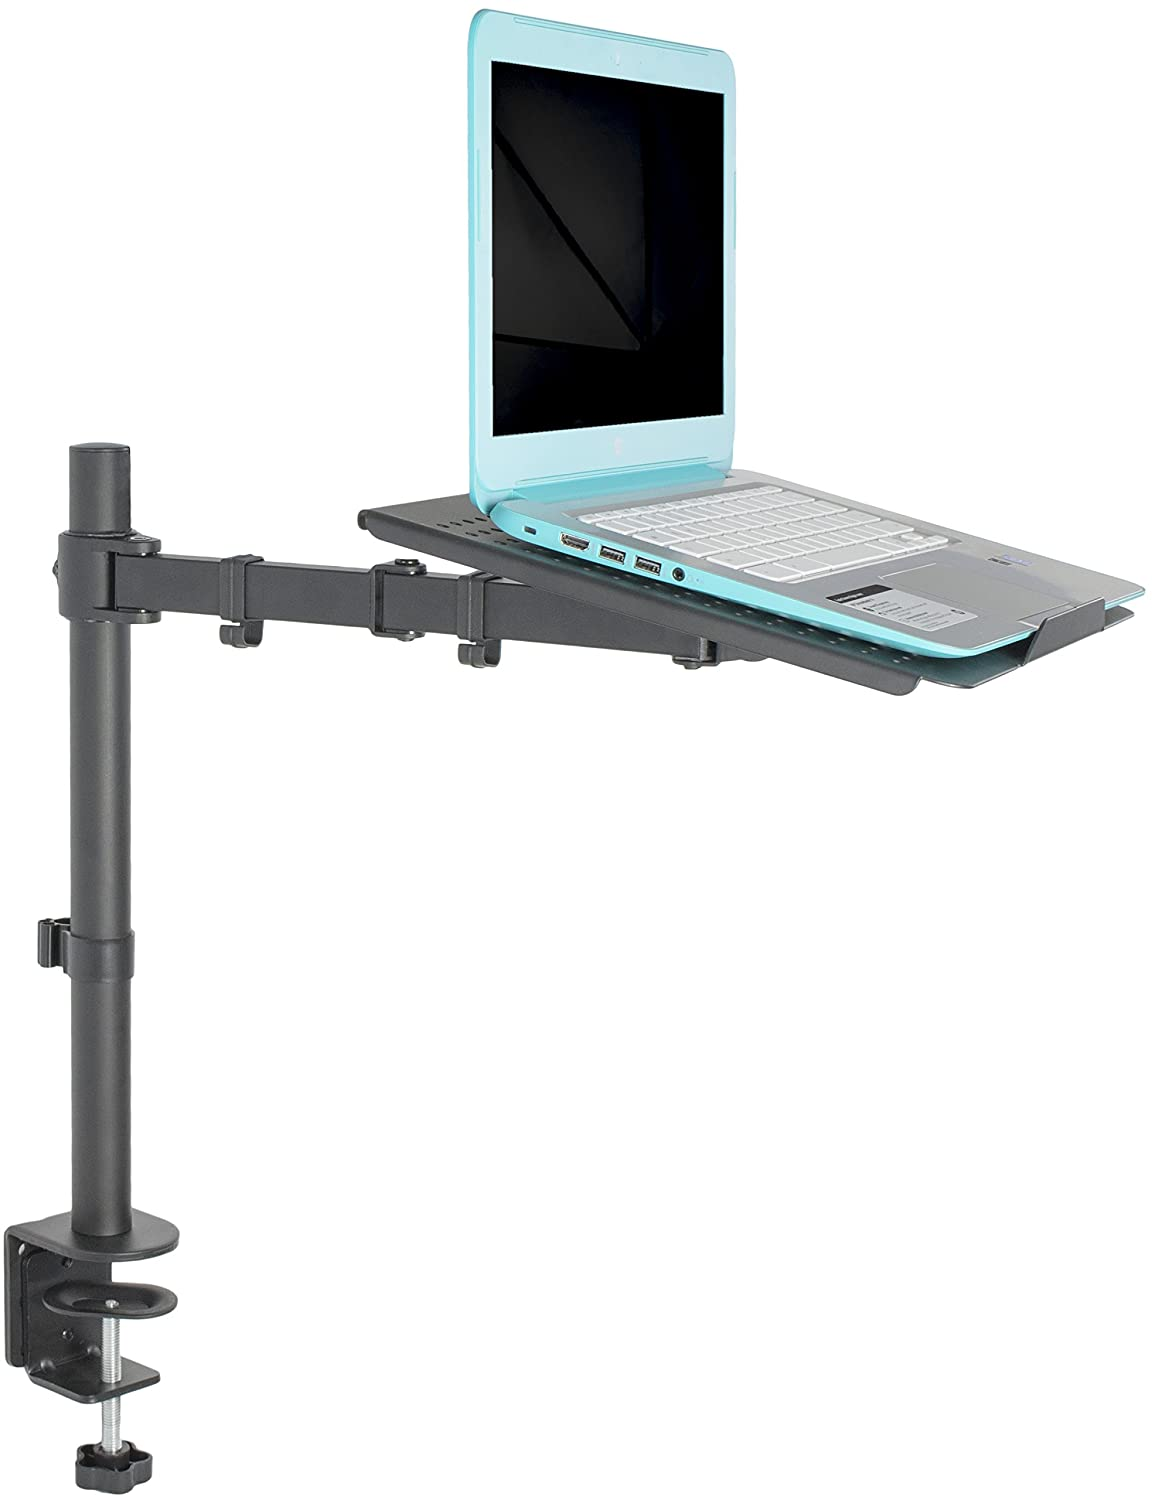 VIVO Single Laptop Notebook Desk Mount Stand - Fully Adjustable Extension with C Clamp (STAND-V001L)